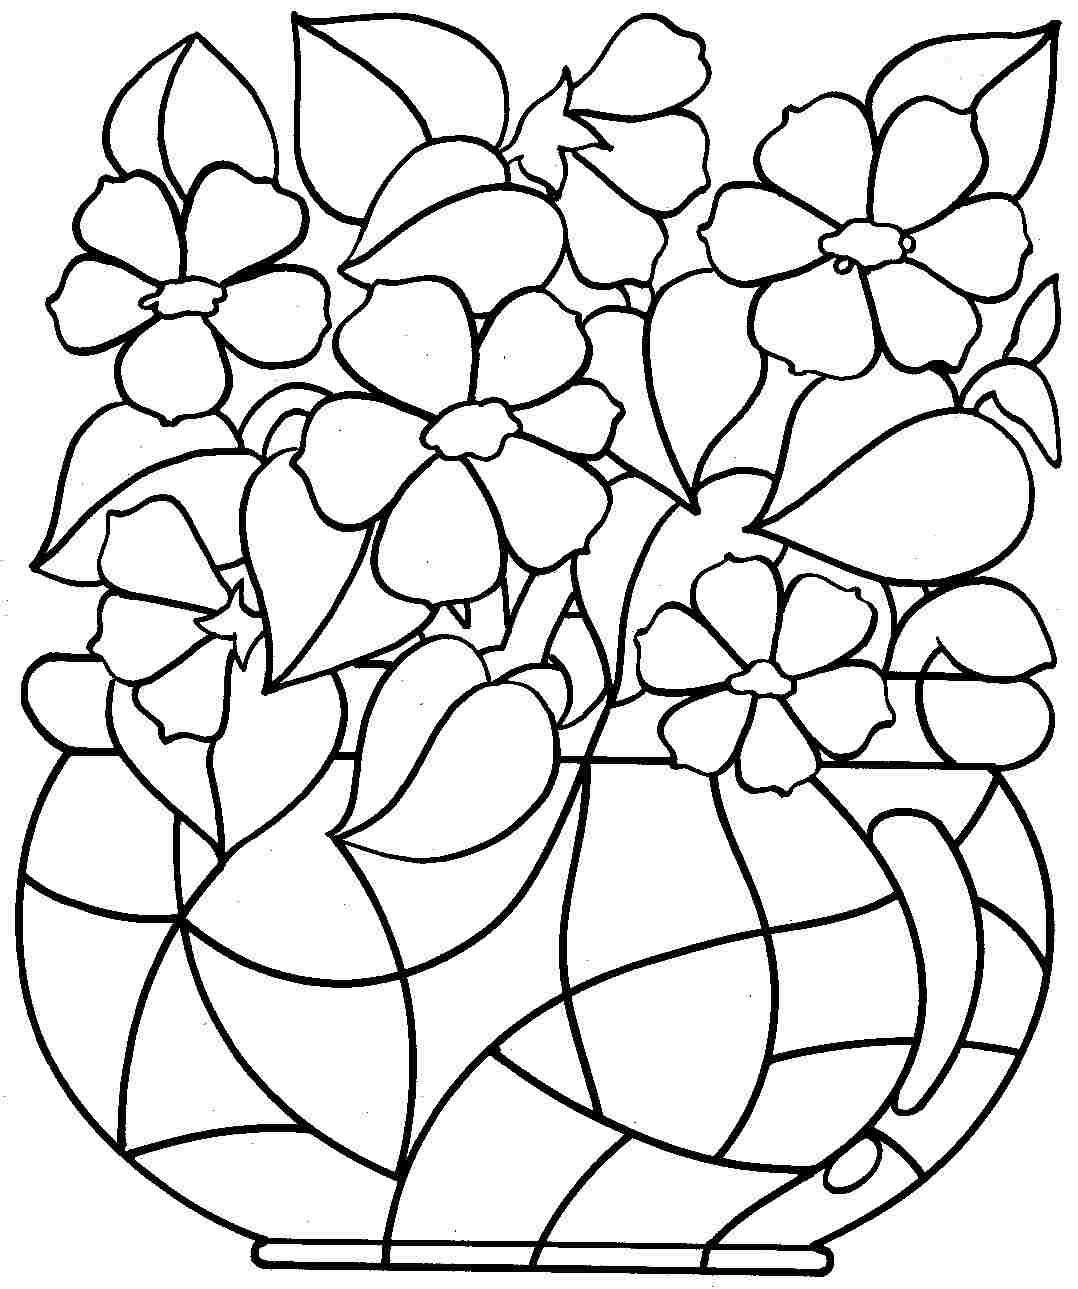 Coloring Ideas : Coloring Ideas Adult Pages Spring Fabulous Free - Free Printable Spring Coloring Pages For Adults